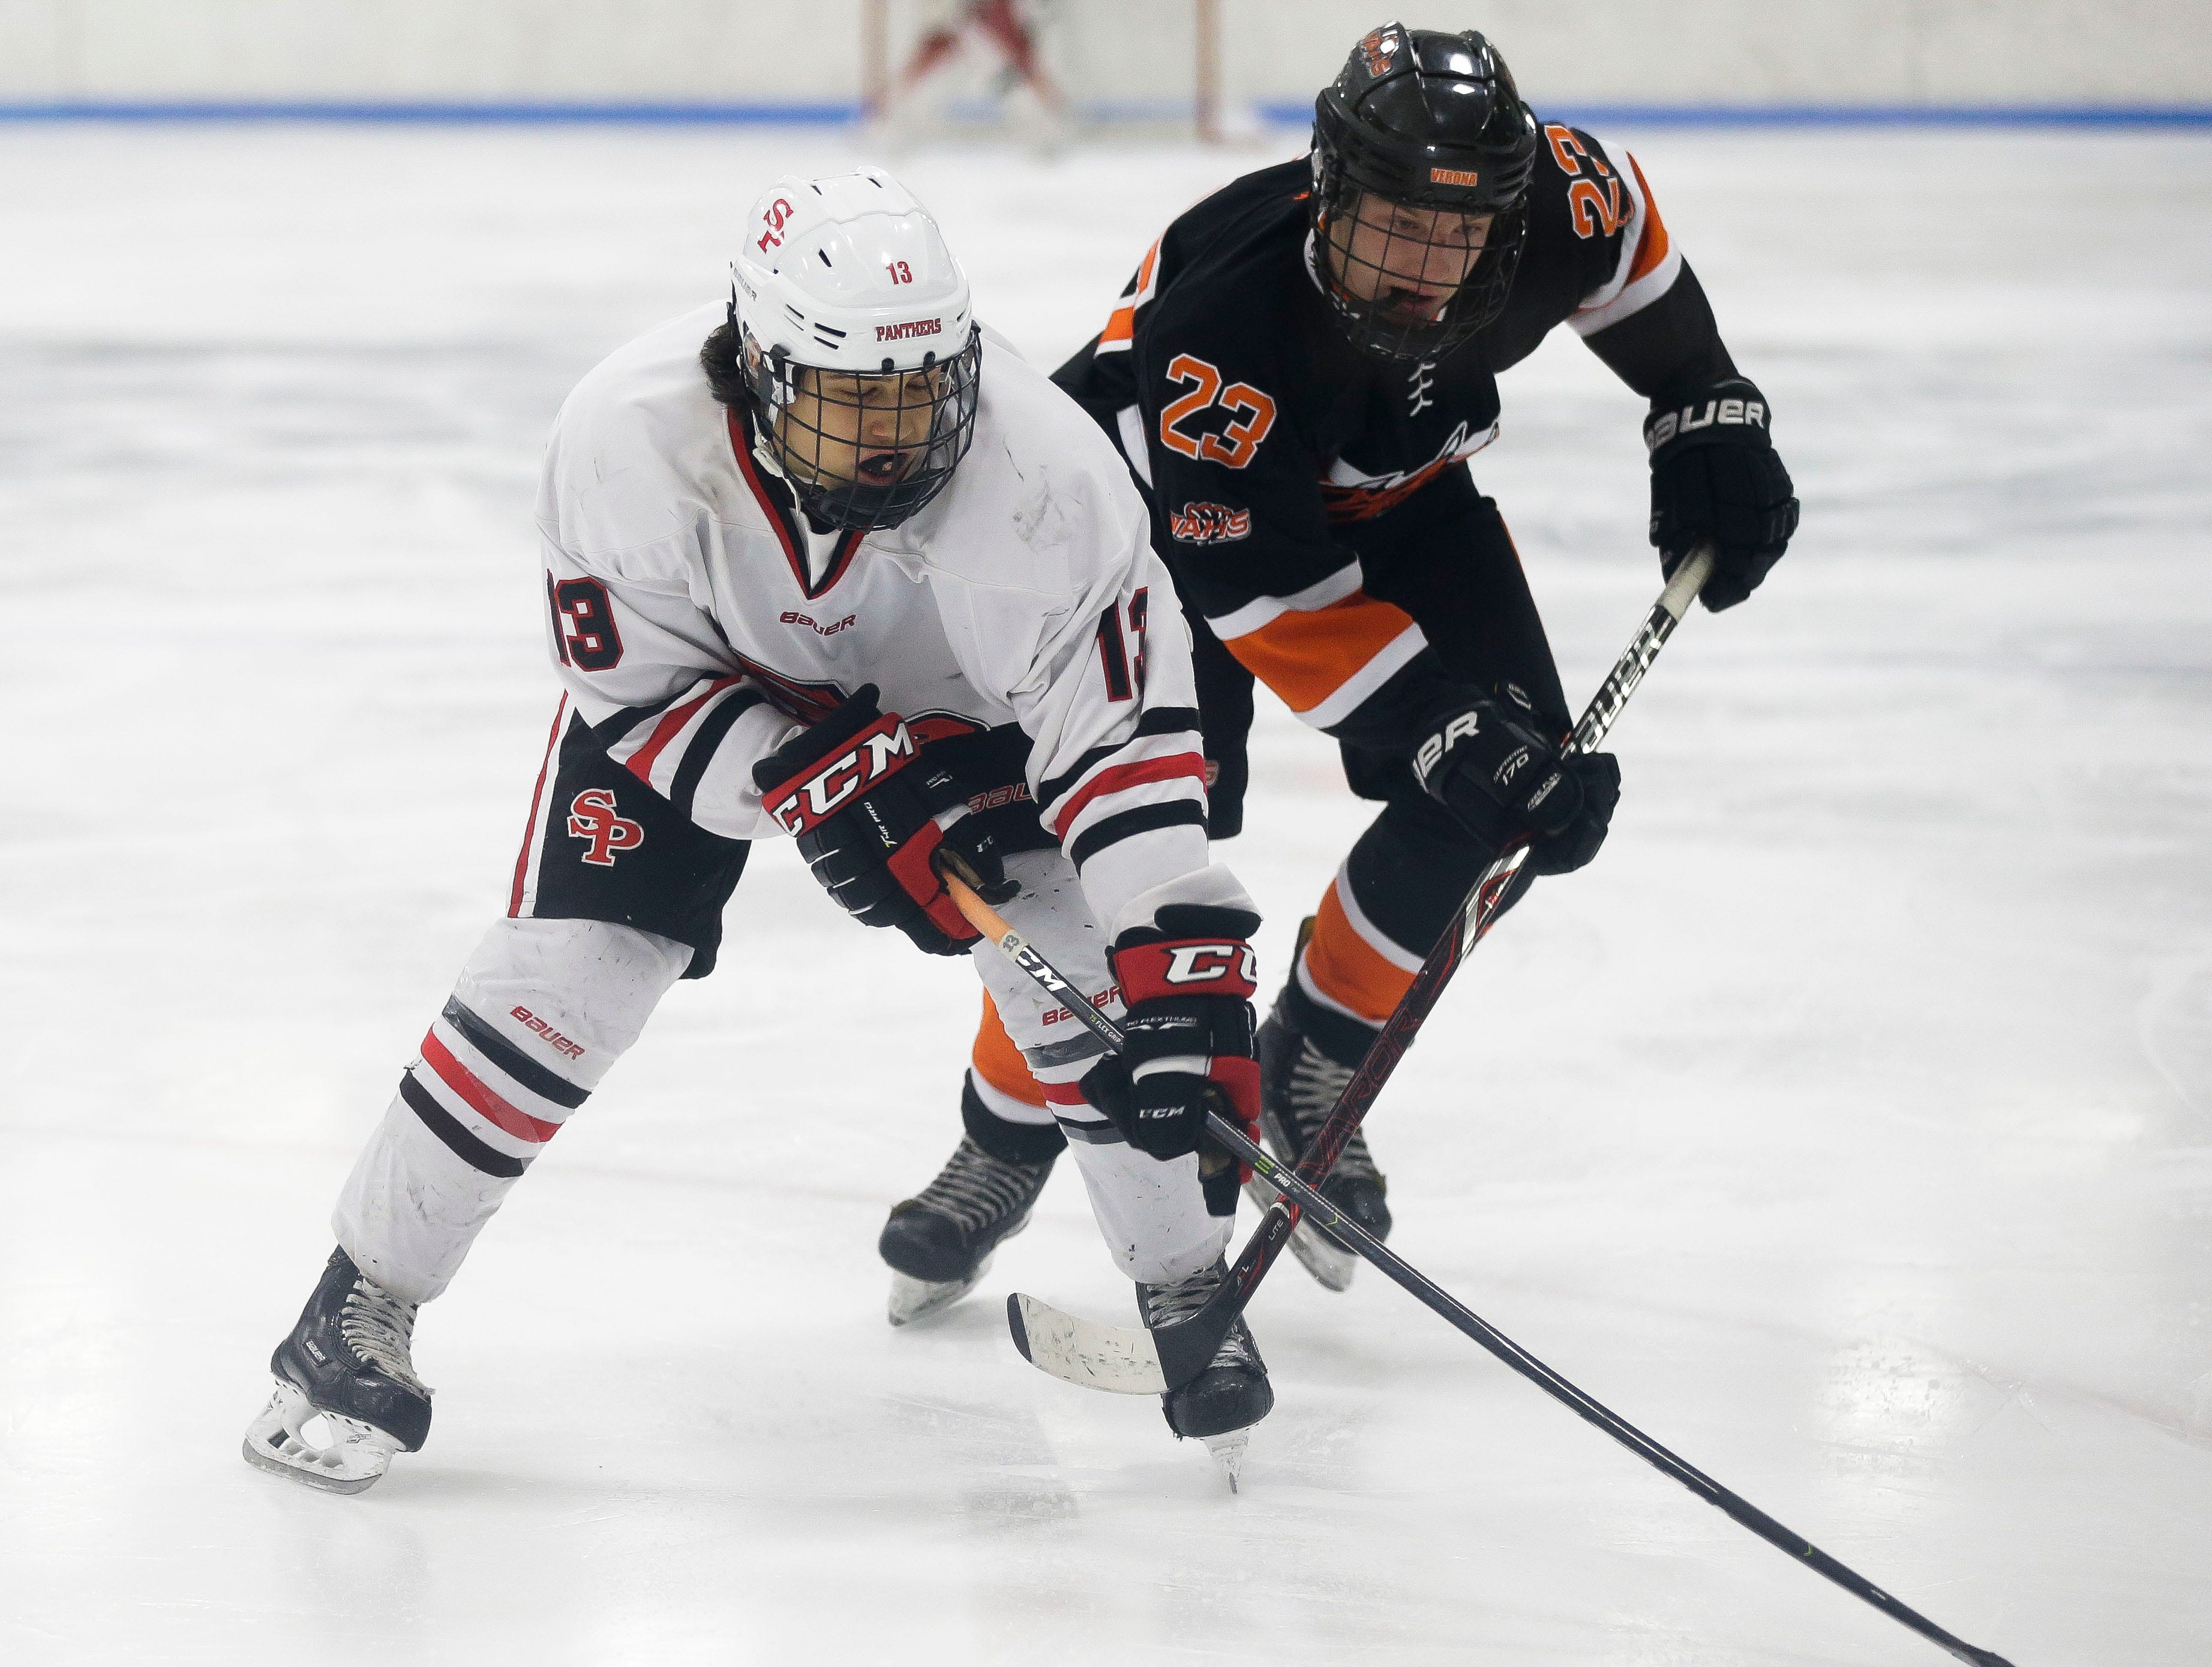 SPASH's Noah Spurlin (13) and Verona's Drew Dingle (23) chase down a loose puck on Saturday, January 26, 2019, at K.B. Willett Ice Arena in Stevens Point, Wis. Tork Mason/USA TODAY NETWORK-Wisconsin